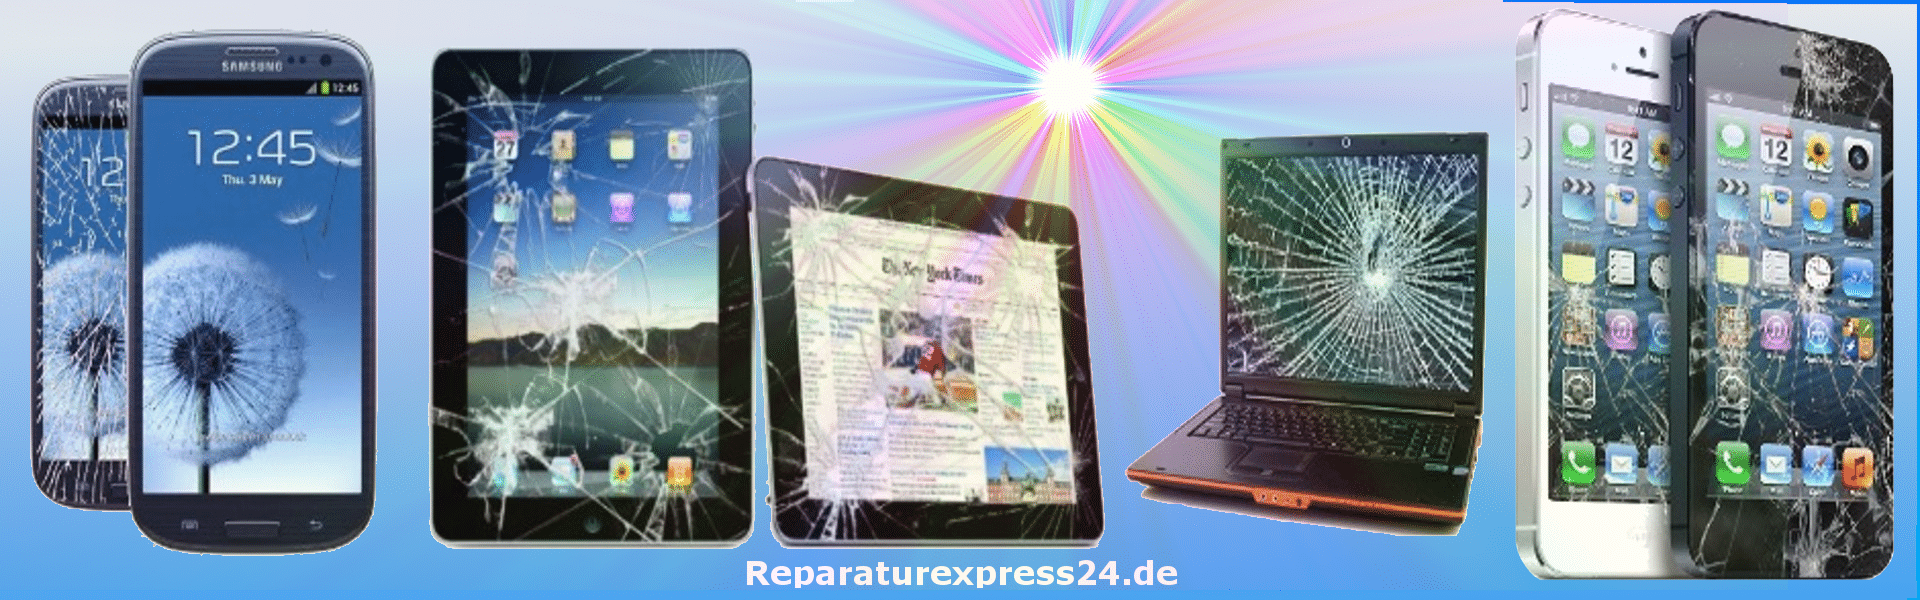 Handy Tablet Reparatur